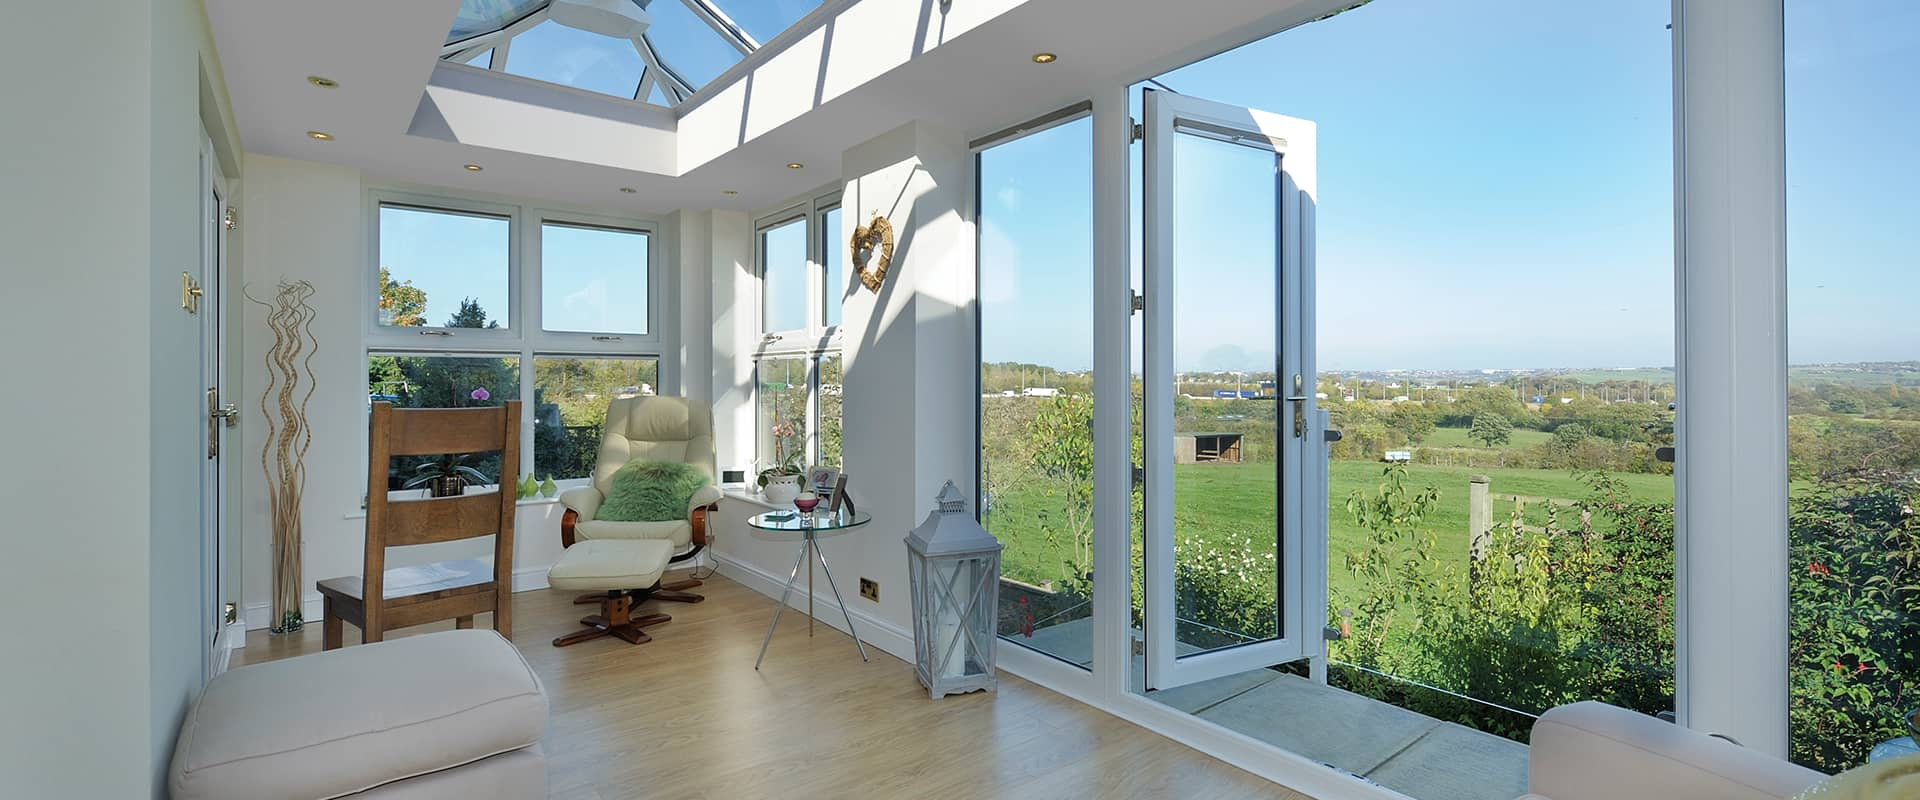 Bespoke Conservatories Sonning Common